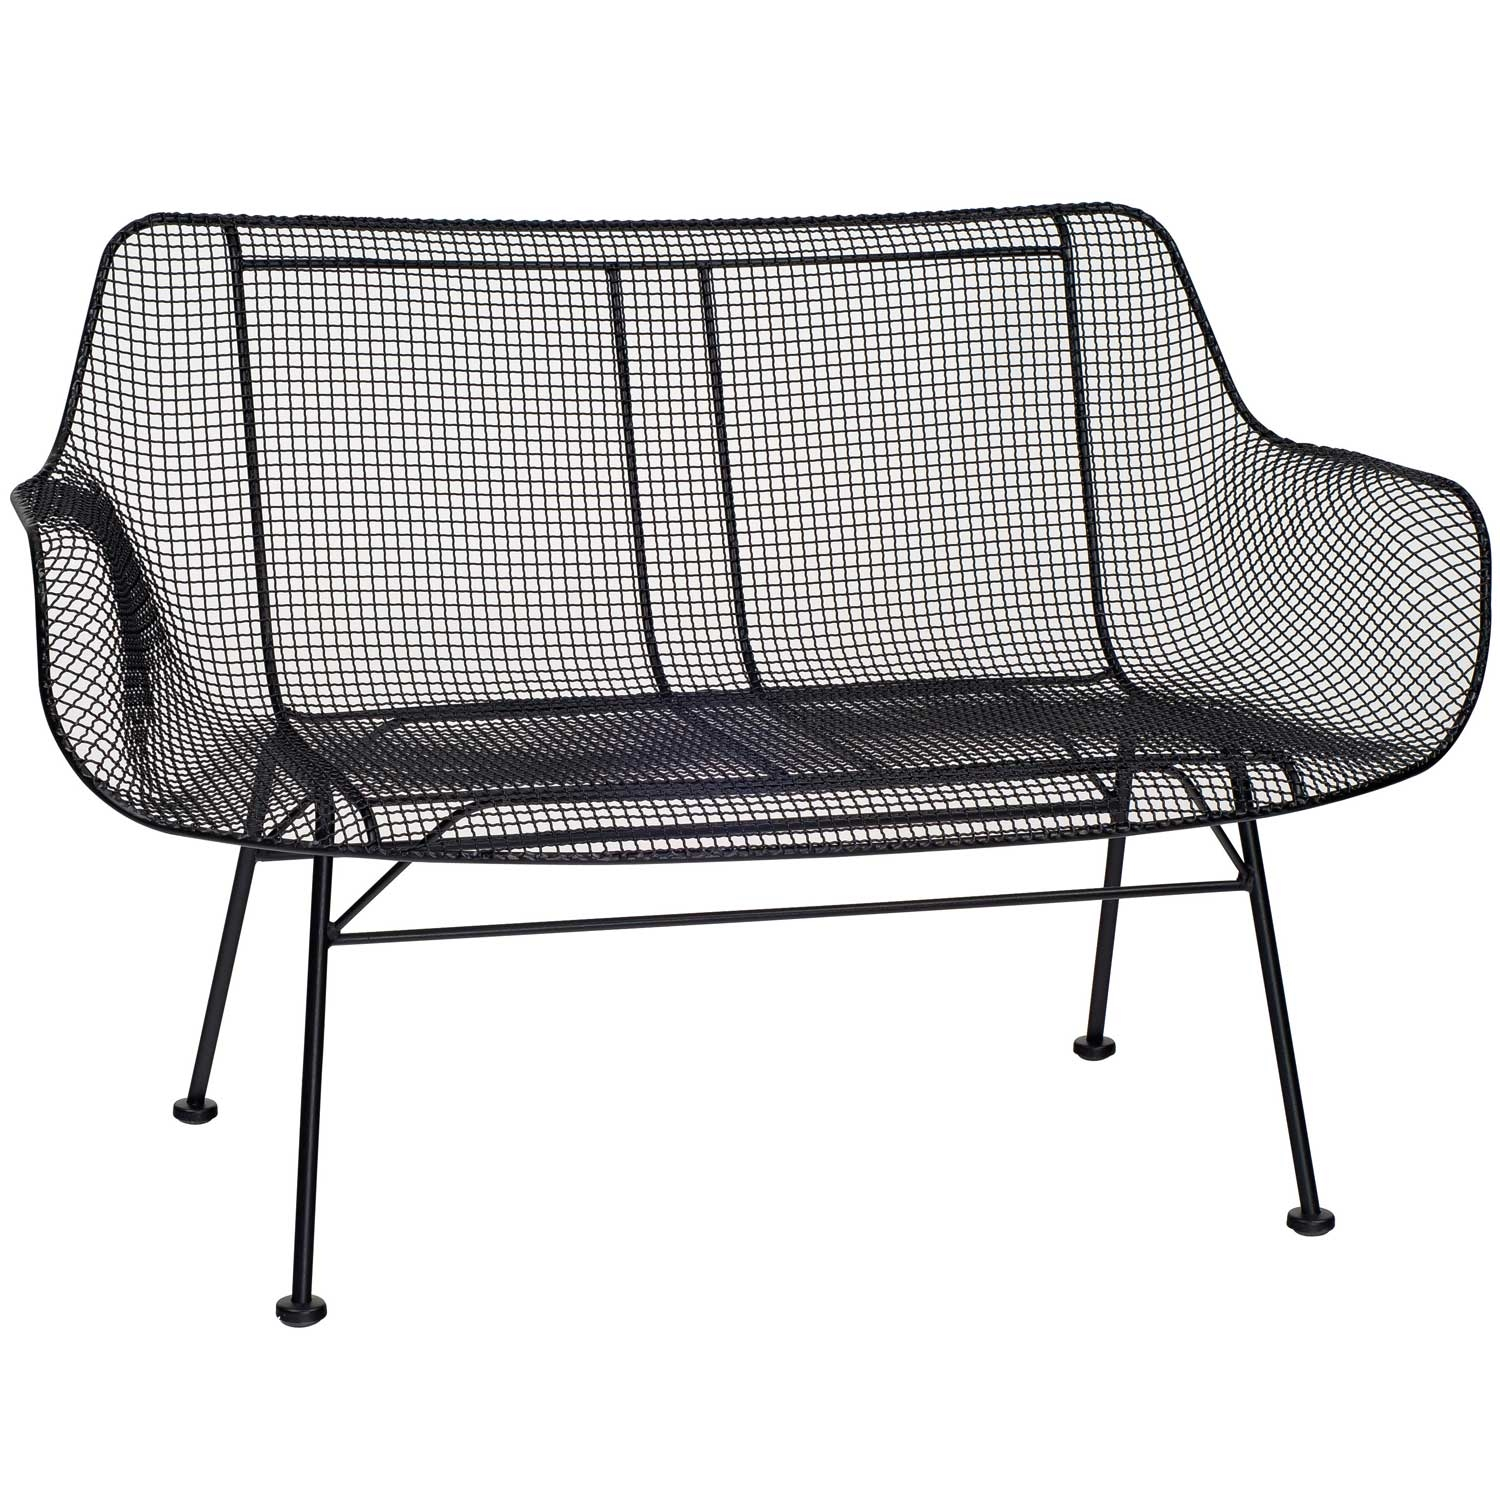 Sculptura Outdoor Bench with Formed Wire Mesh Seat